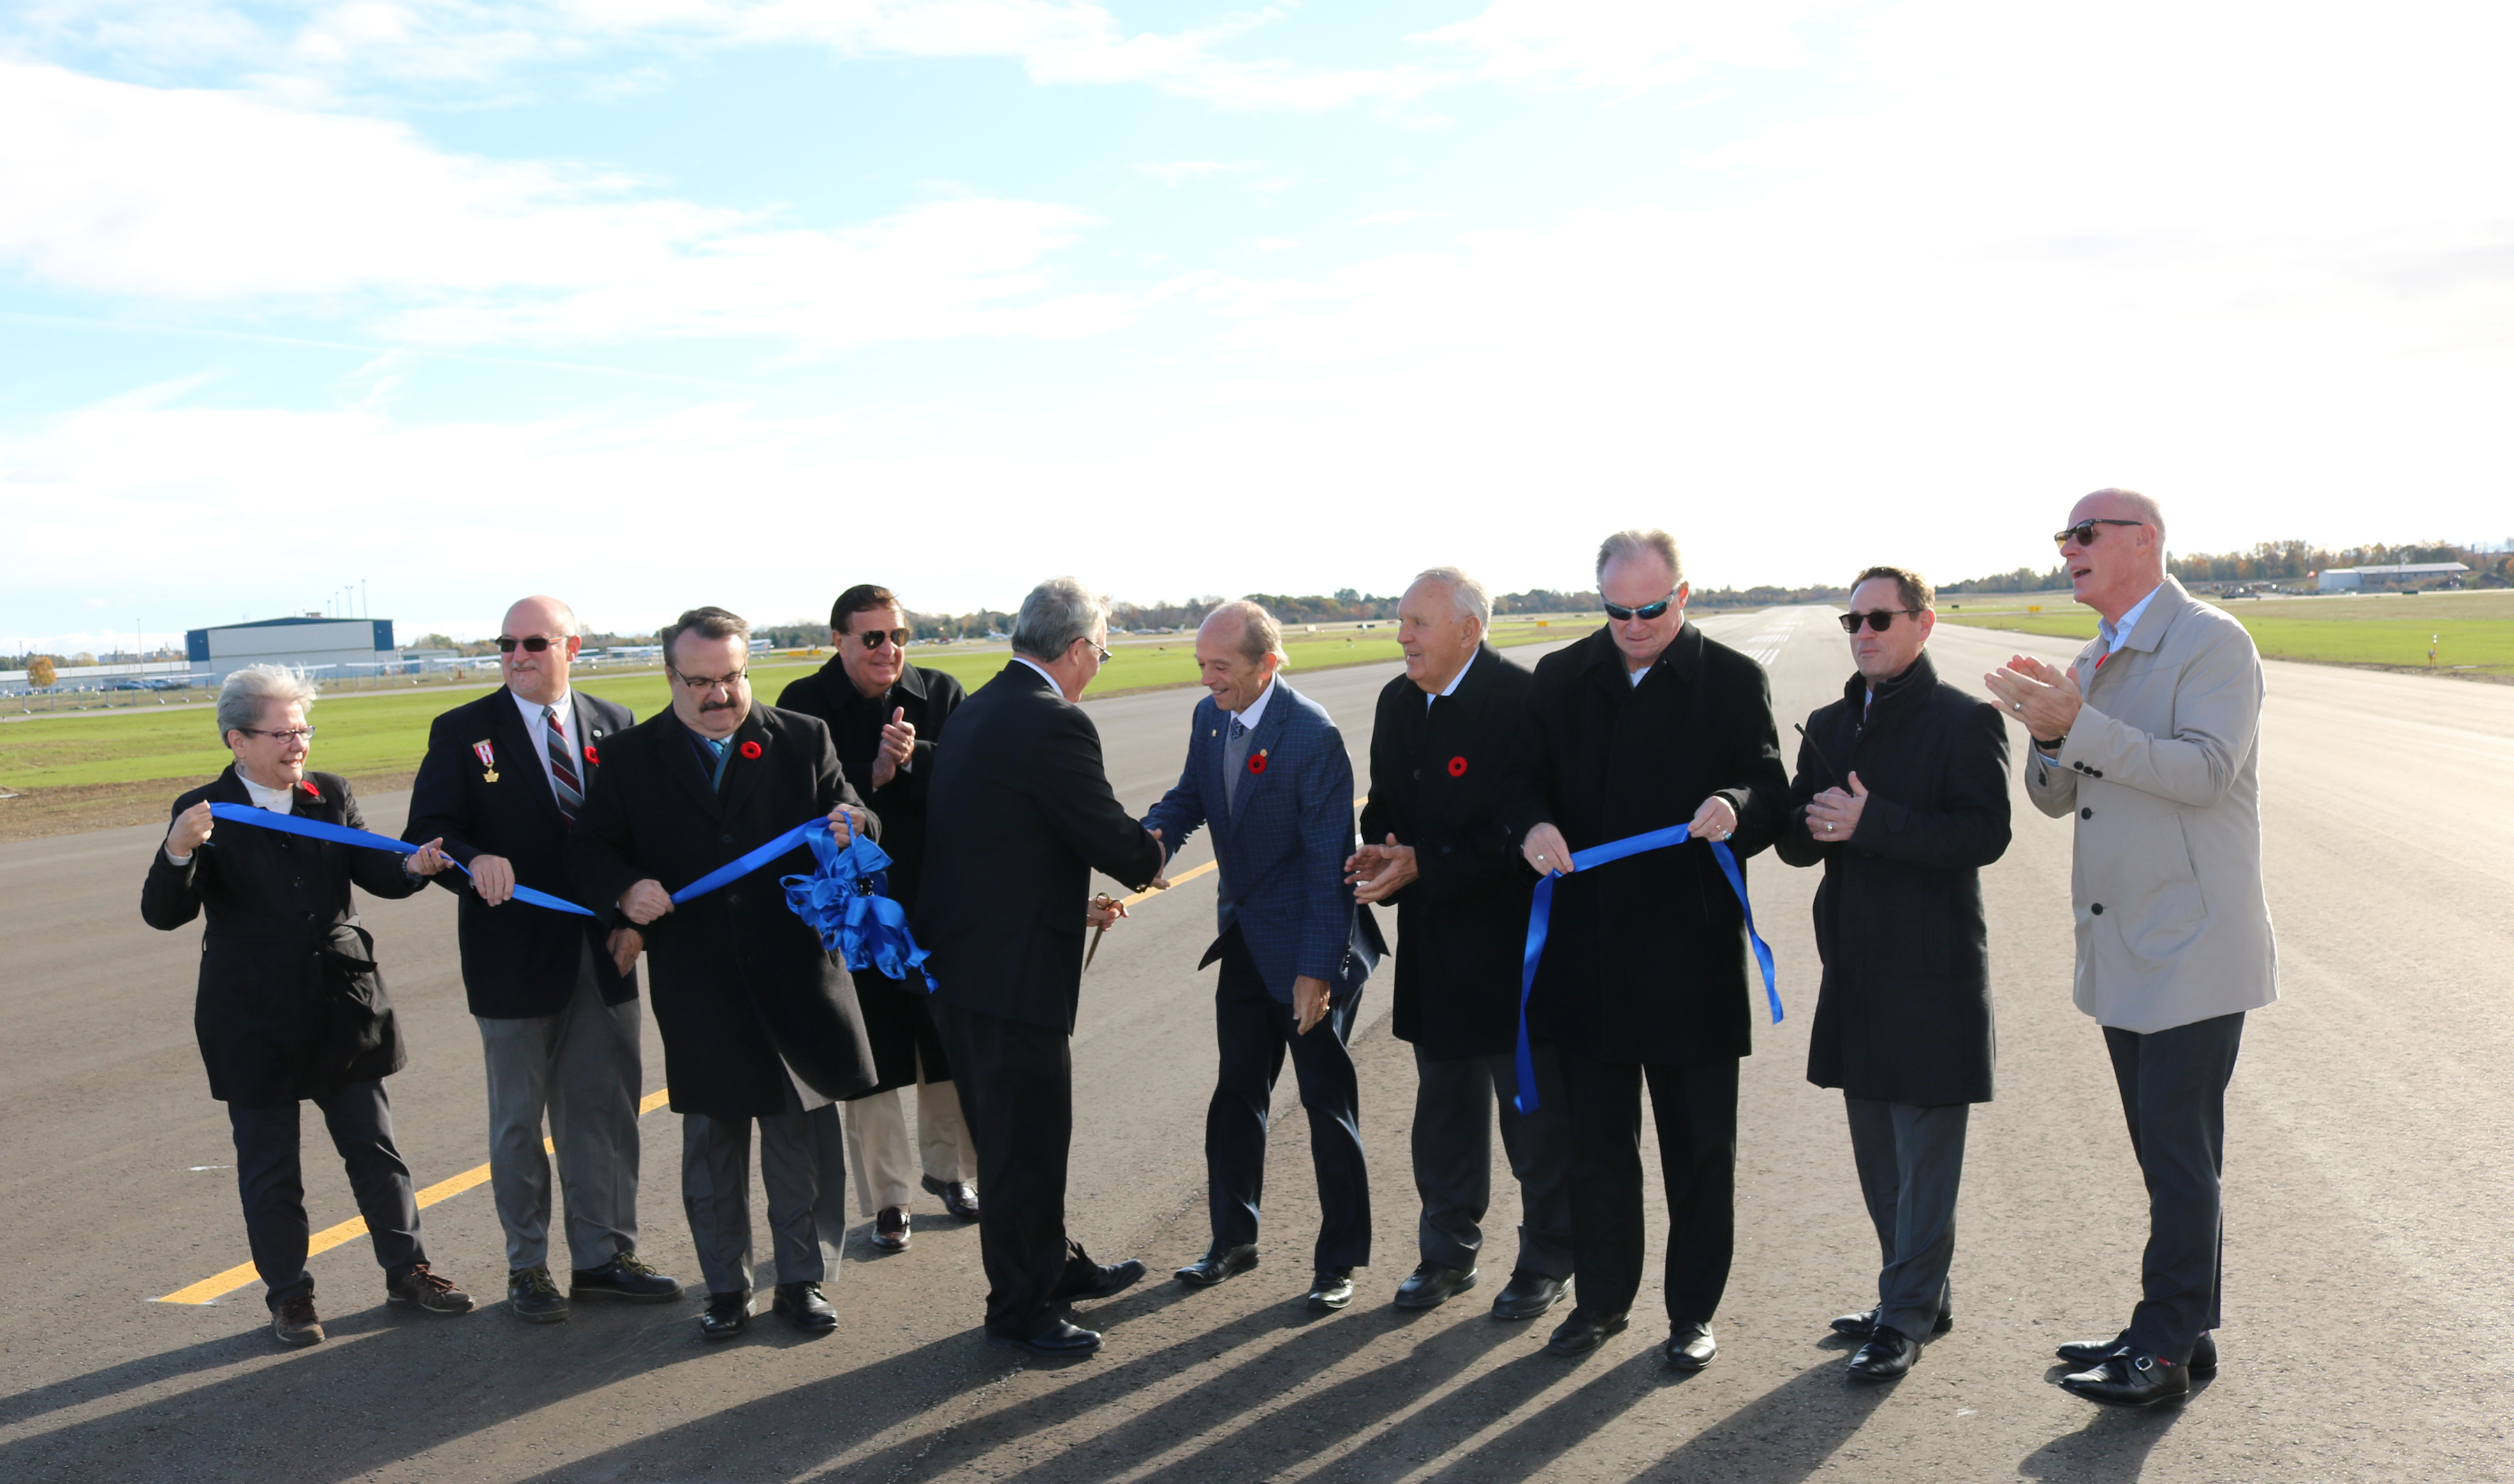 Ribbon-cutting to celebrate the official re-opening of the Oshawa Executive Airport runway